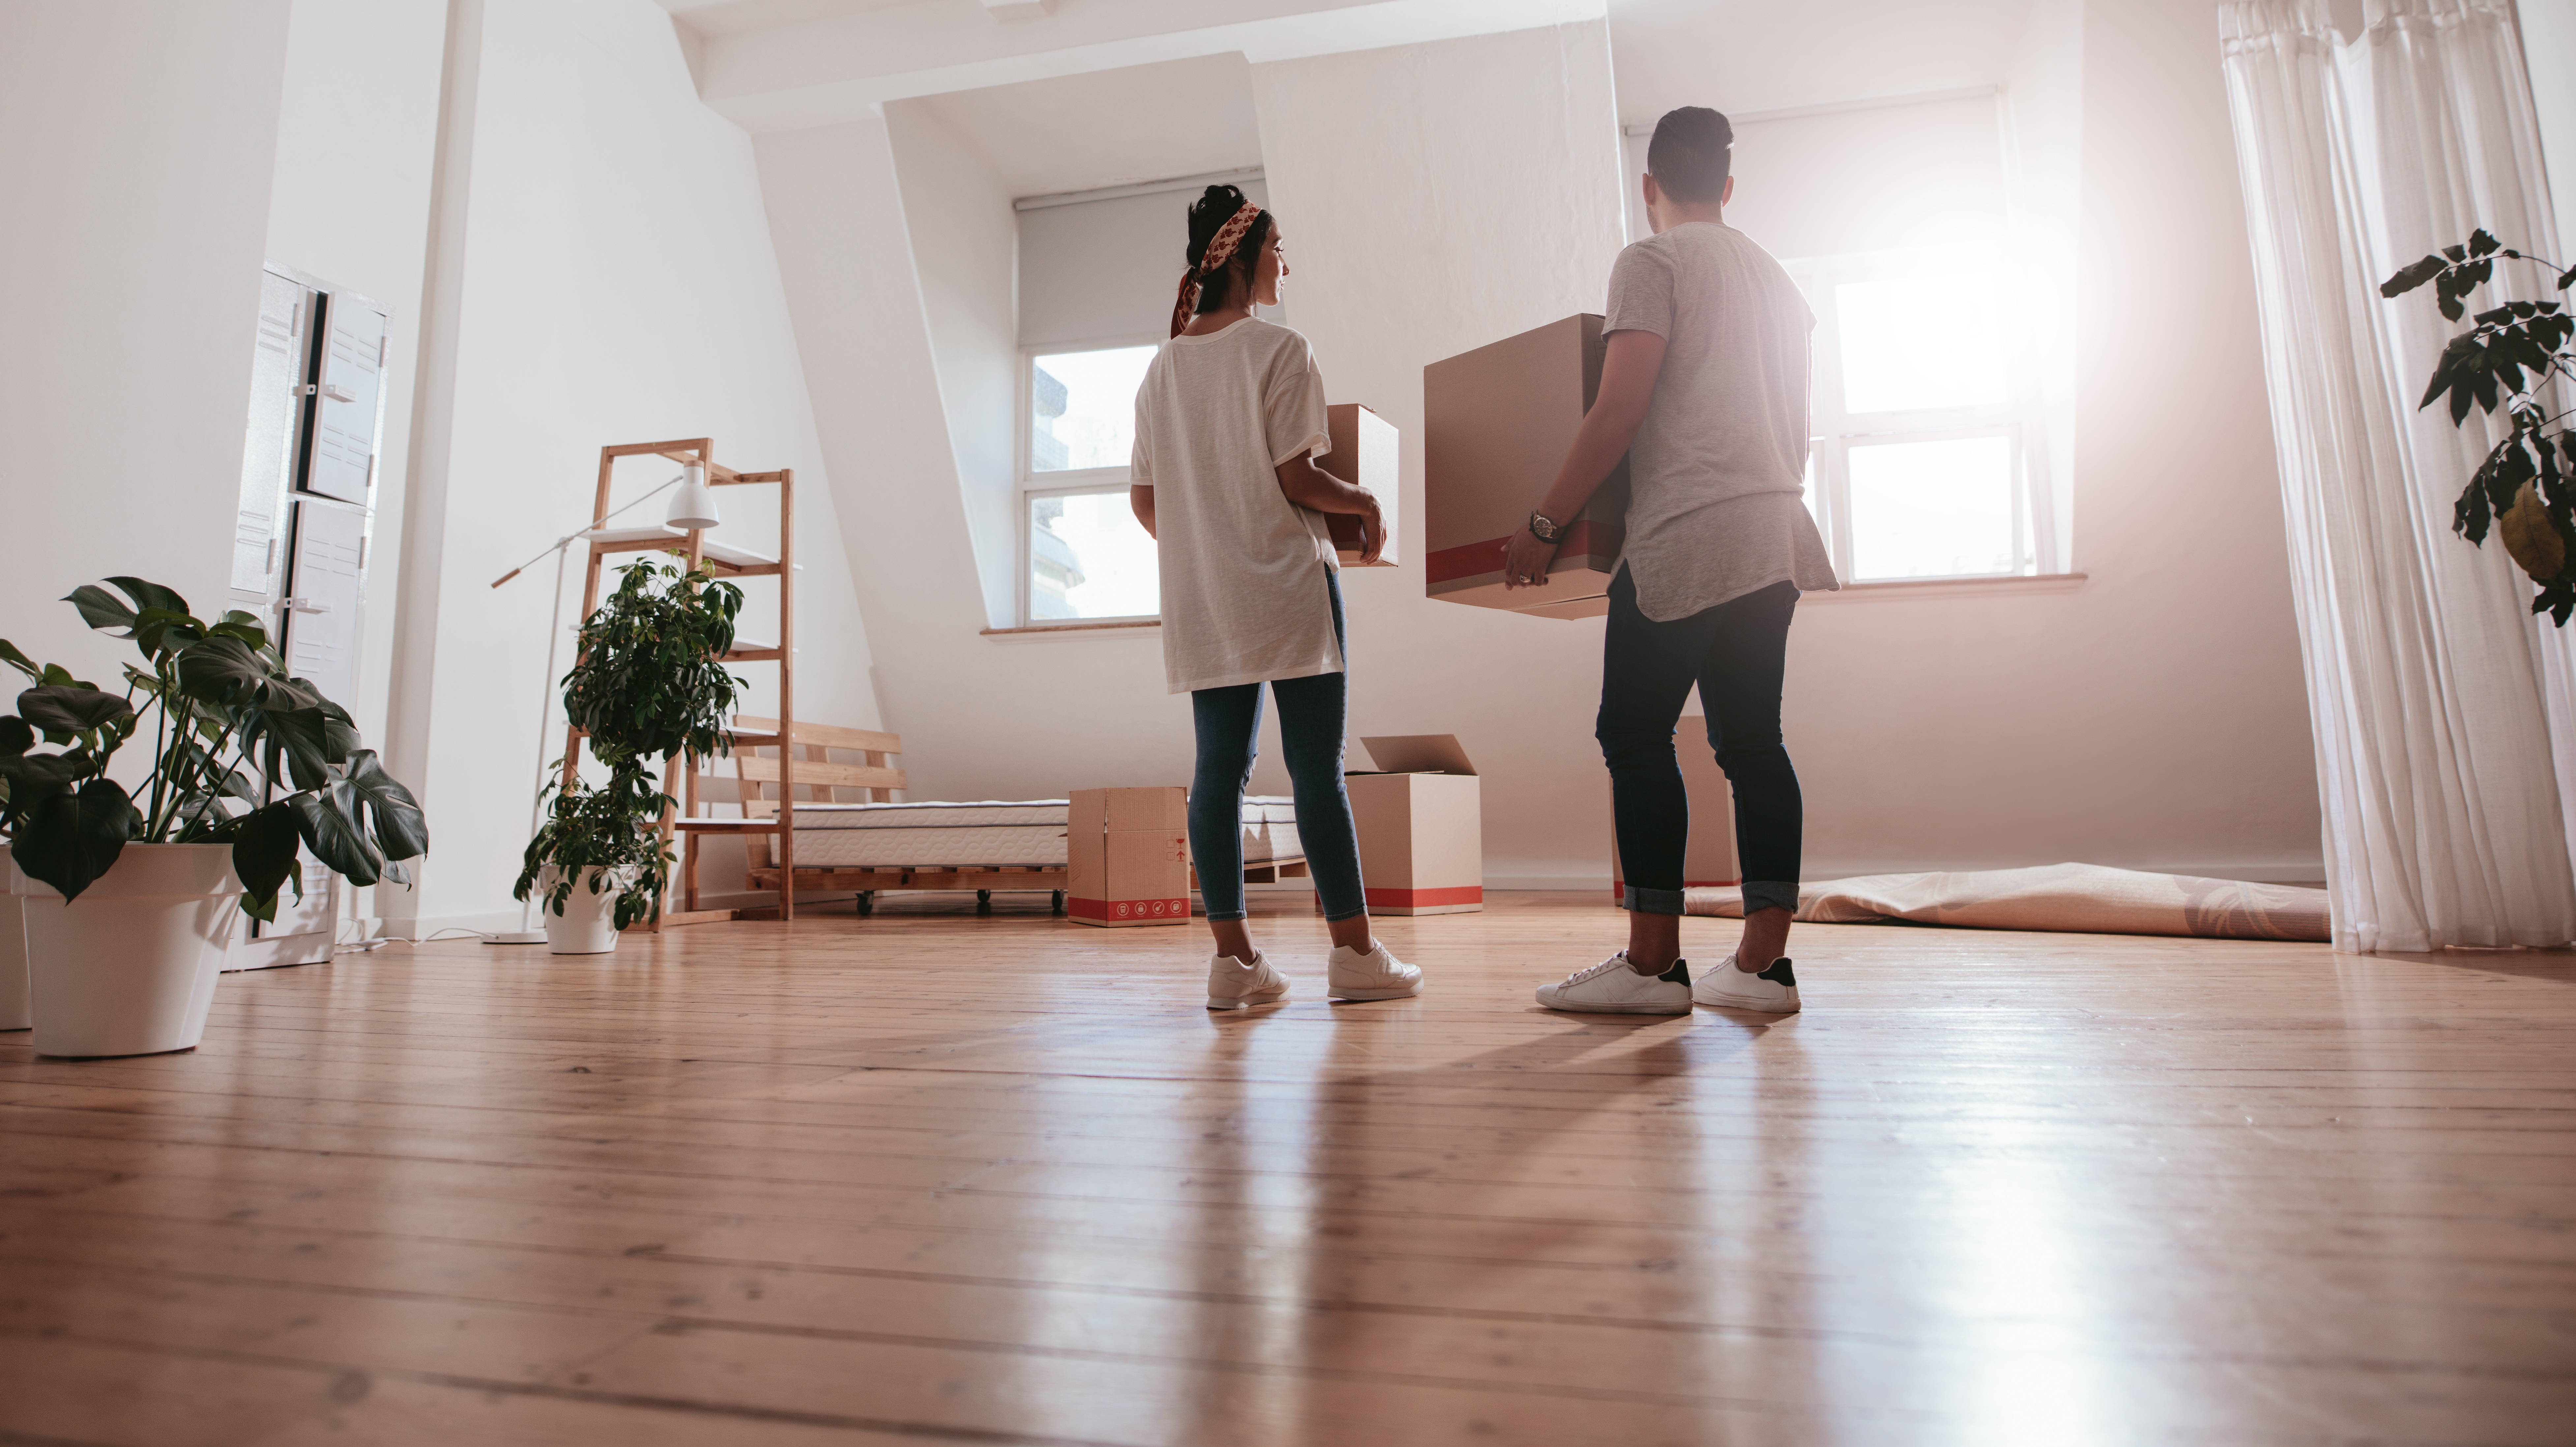 To downsize or not to downsize